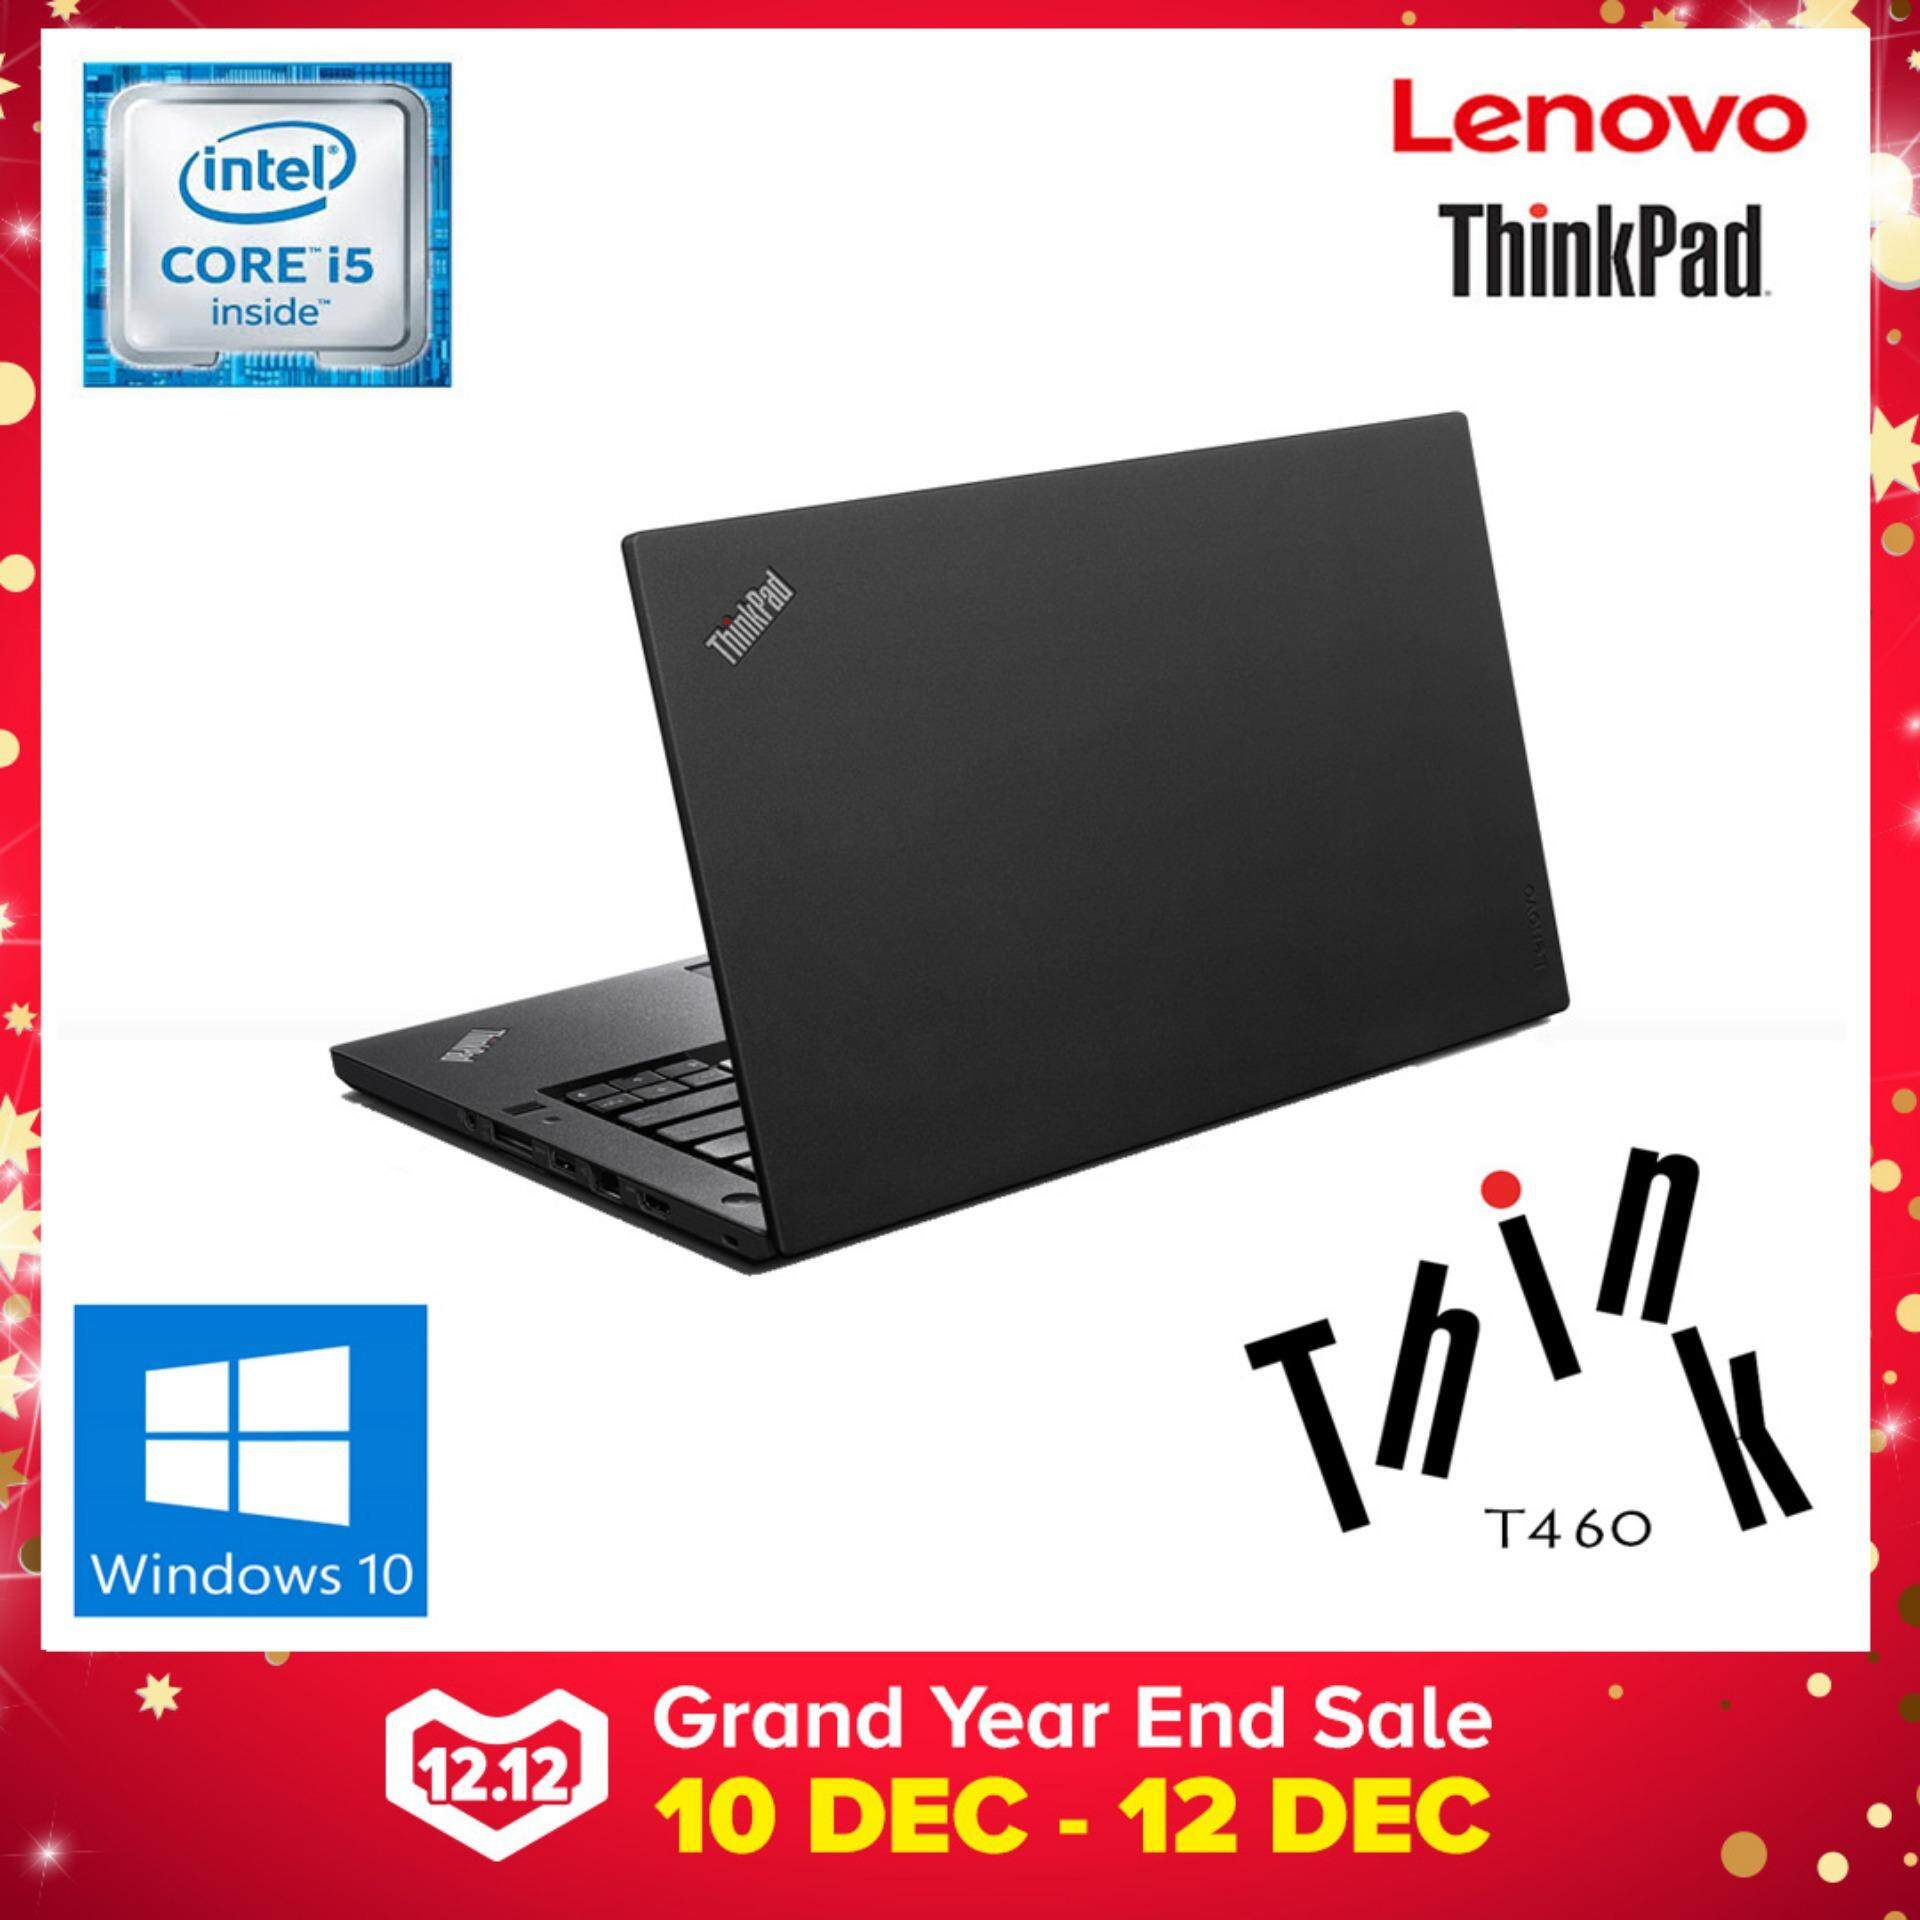 LENOVO THINKPAD T460 ULTRABOOK  [CORE I5 6TH GEN/ 8GB DDR3/ 500GB STORAGE/ W10PRO] LENOVO WARRANTY Malaysia